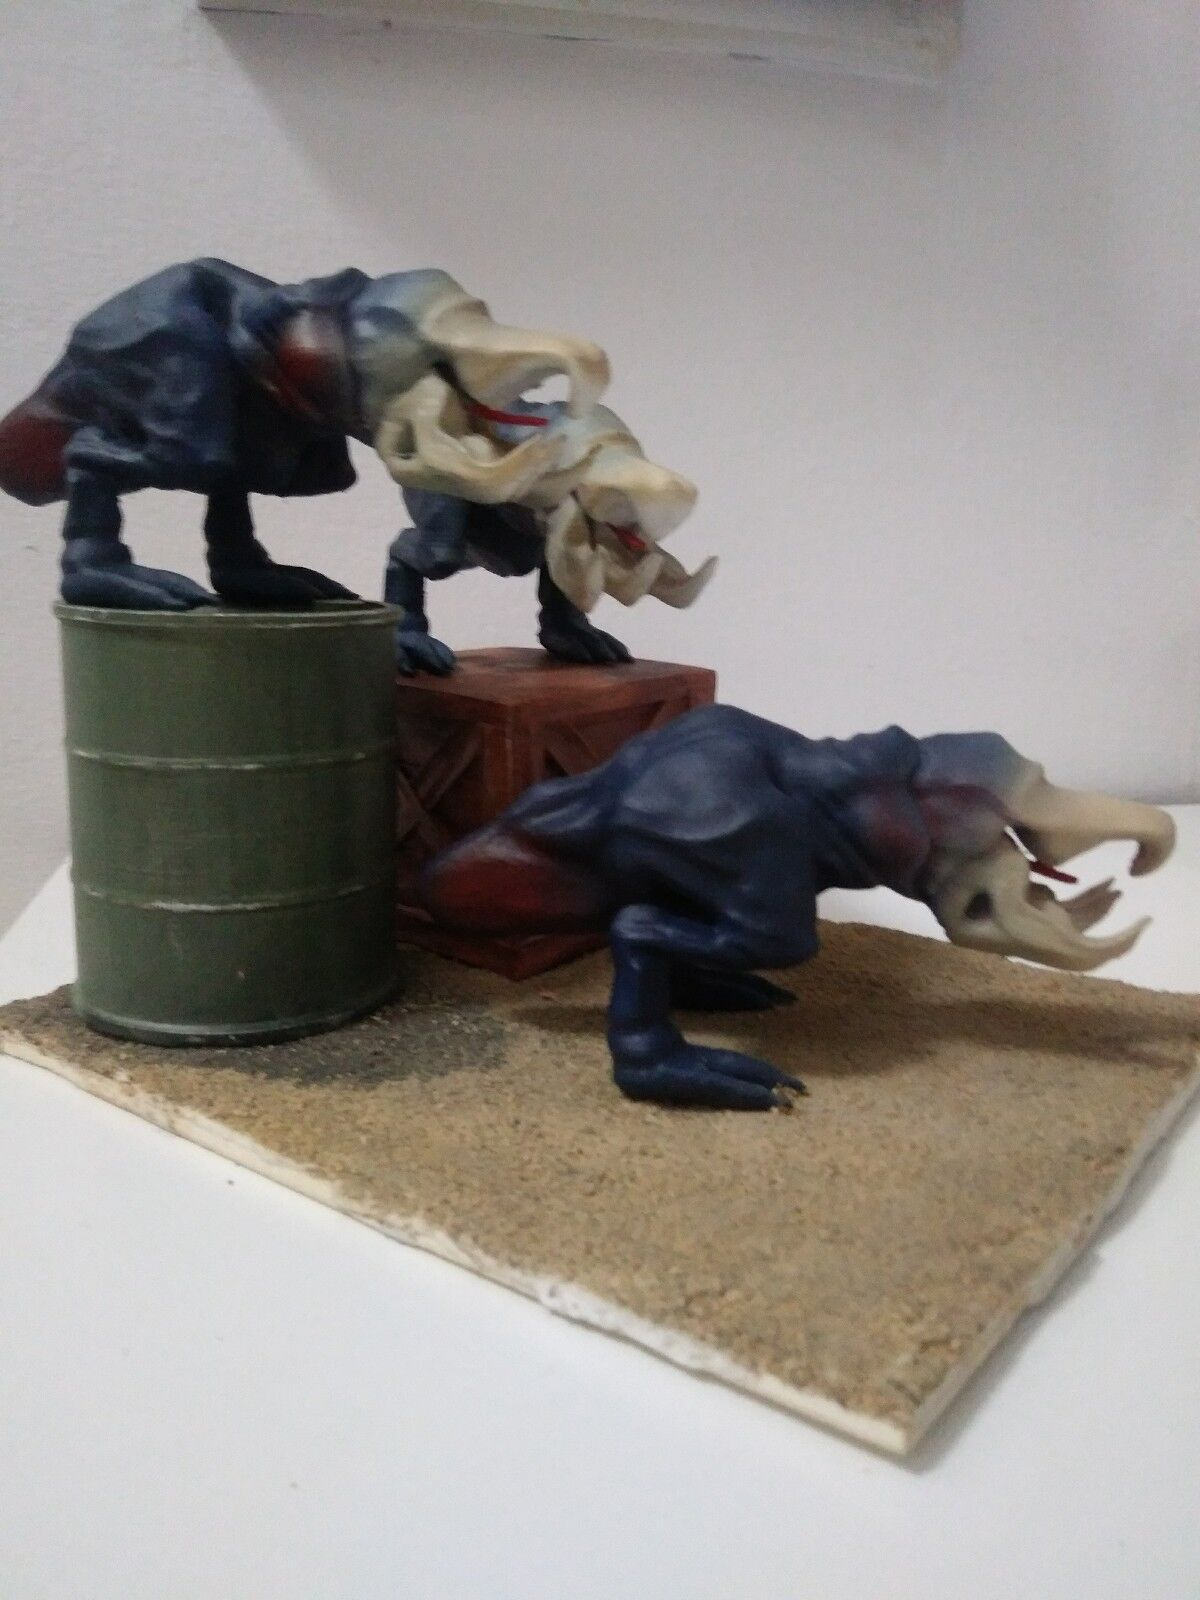 Tremors Shriekers Diorama Statue Action Figure